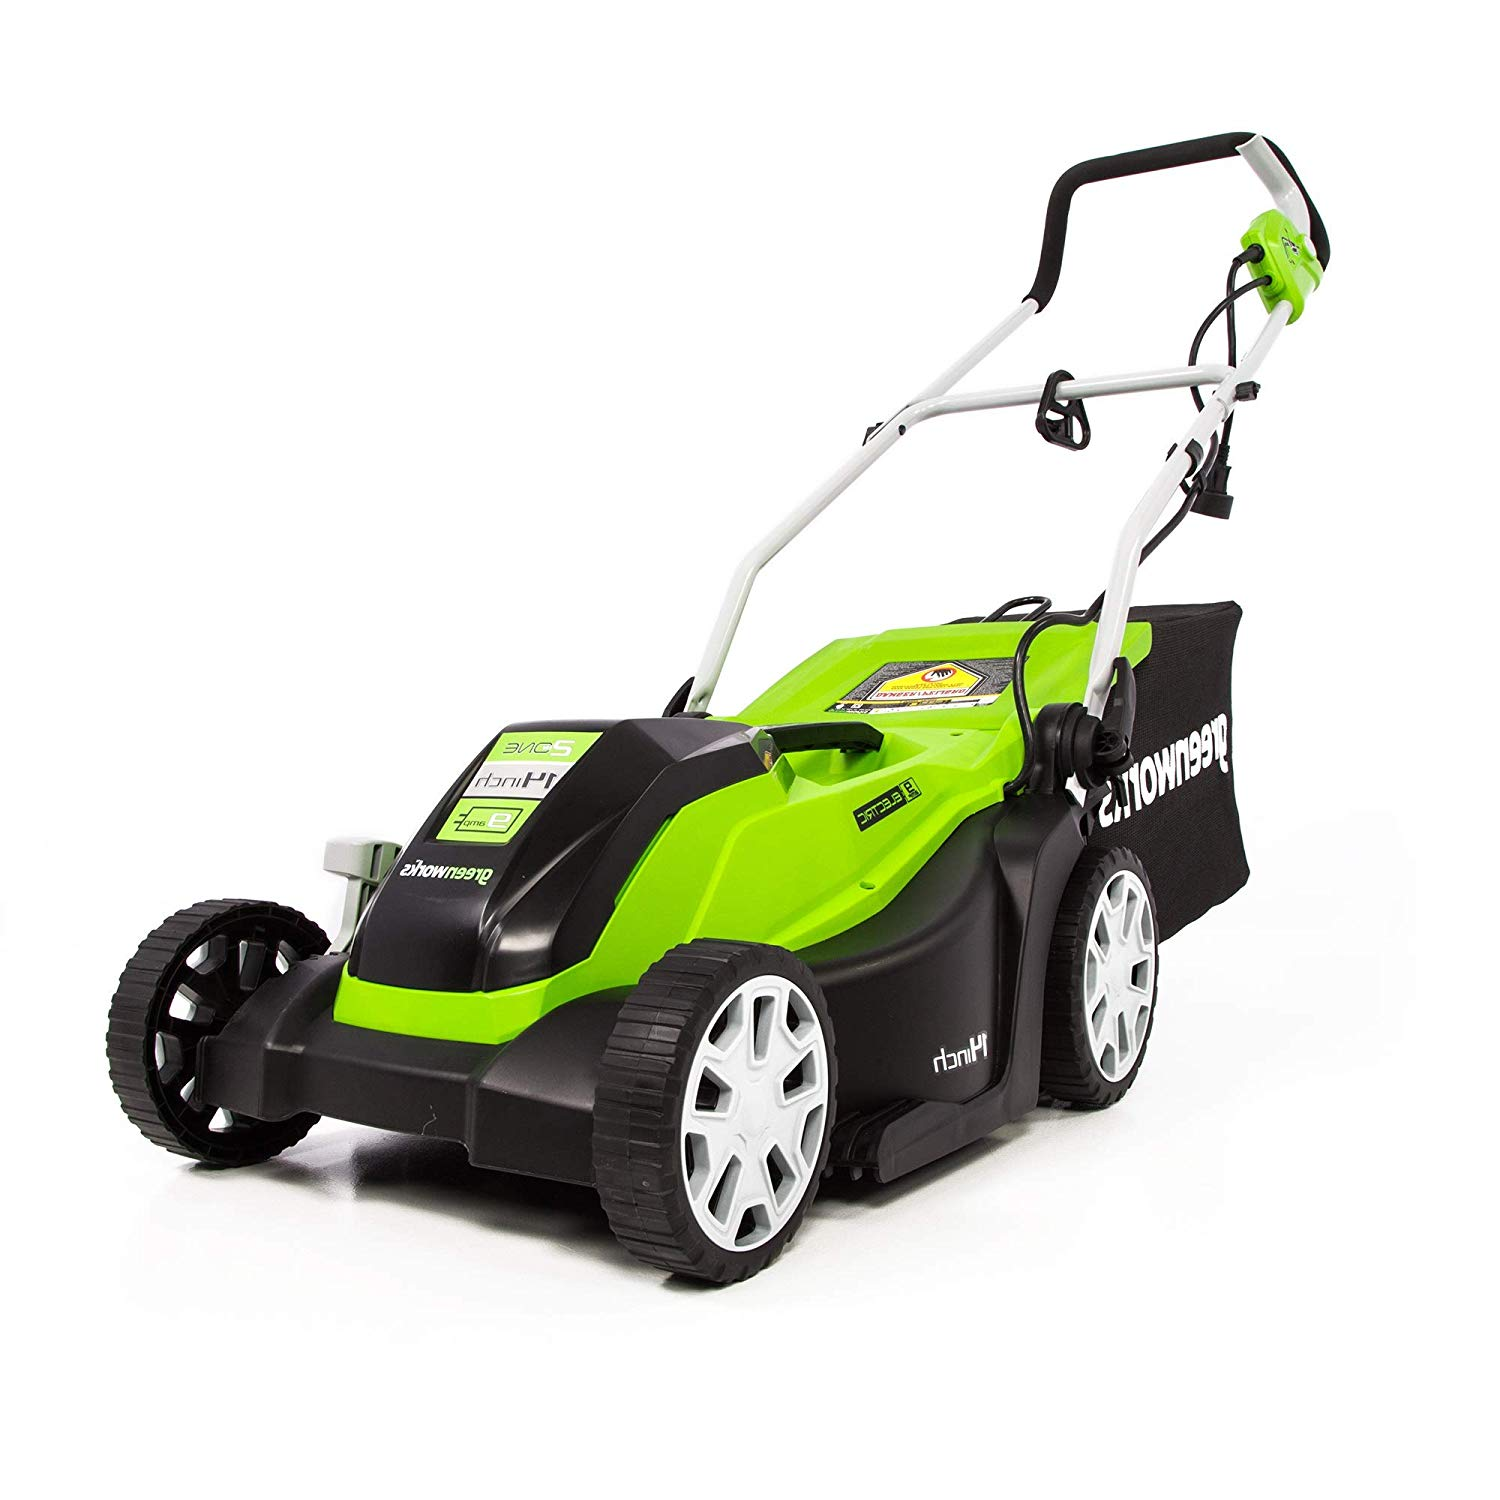 GreenWorks Corded Electric Lawn Mower MO09B01